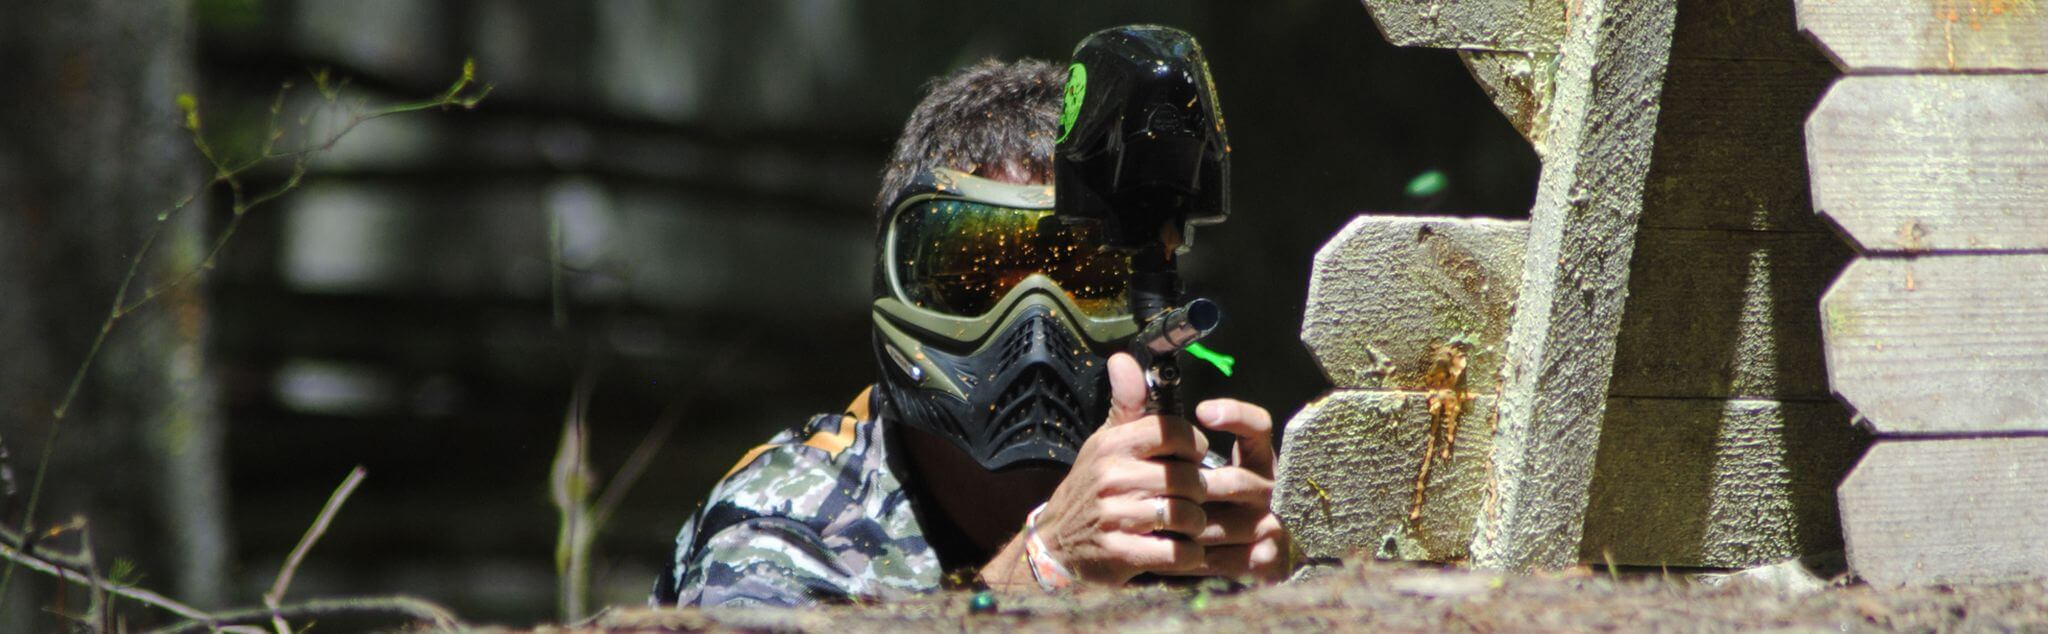 Paintball en Campillo De Altobuey